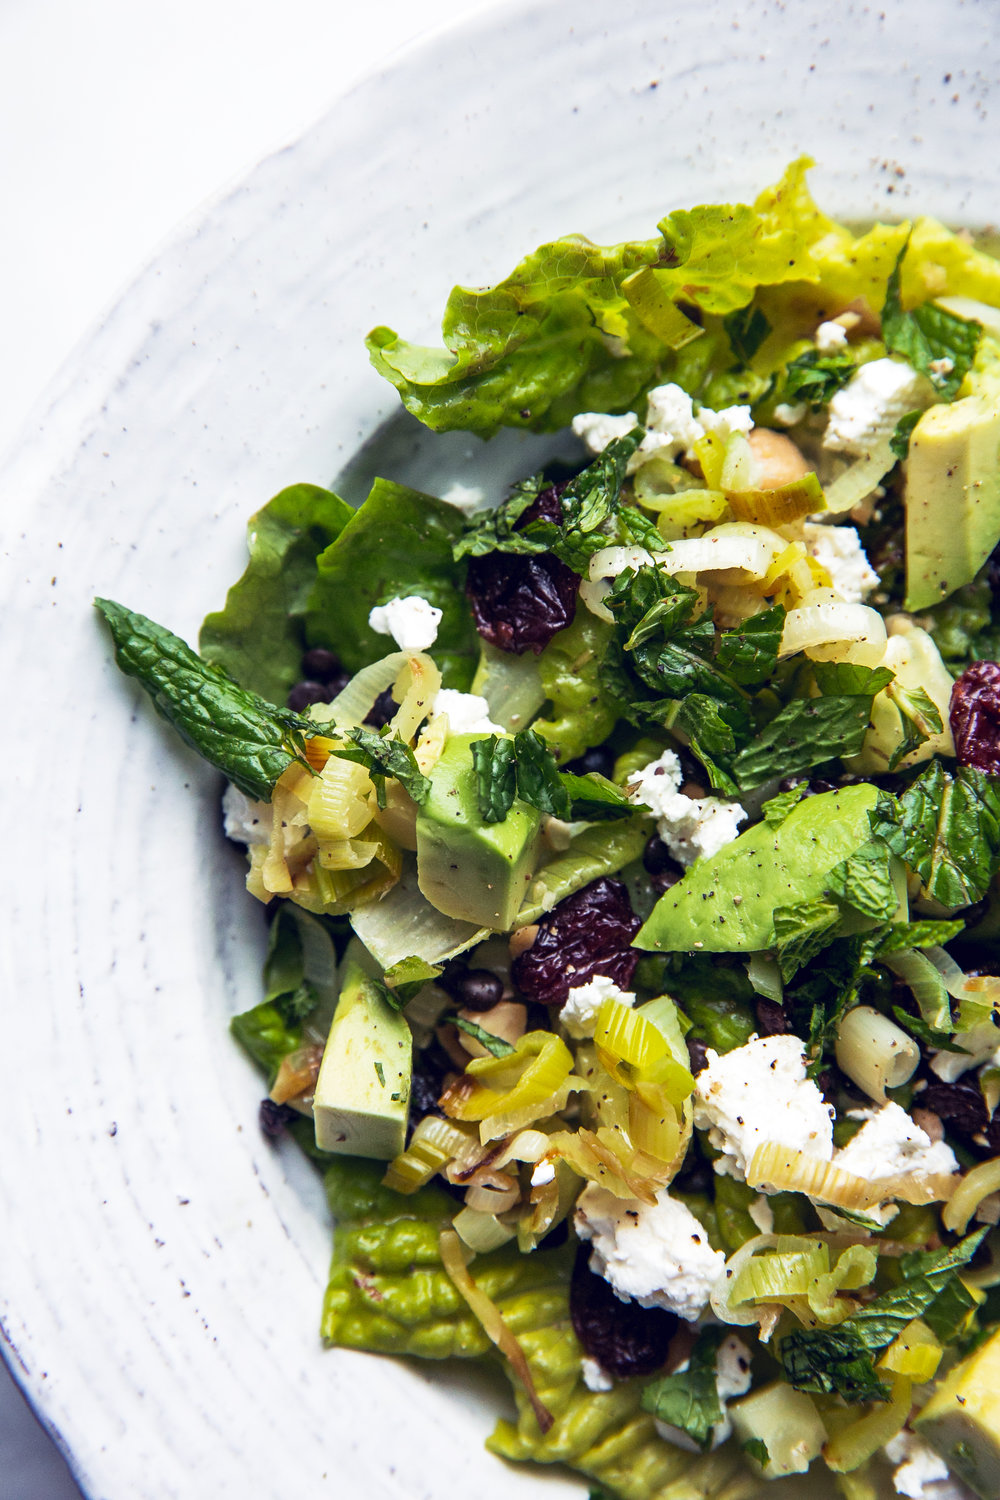 Black Lentil, Feta, and Avocado Salad With Lemon-Dijon Vinaigrette